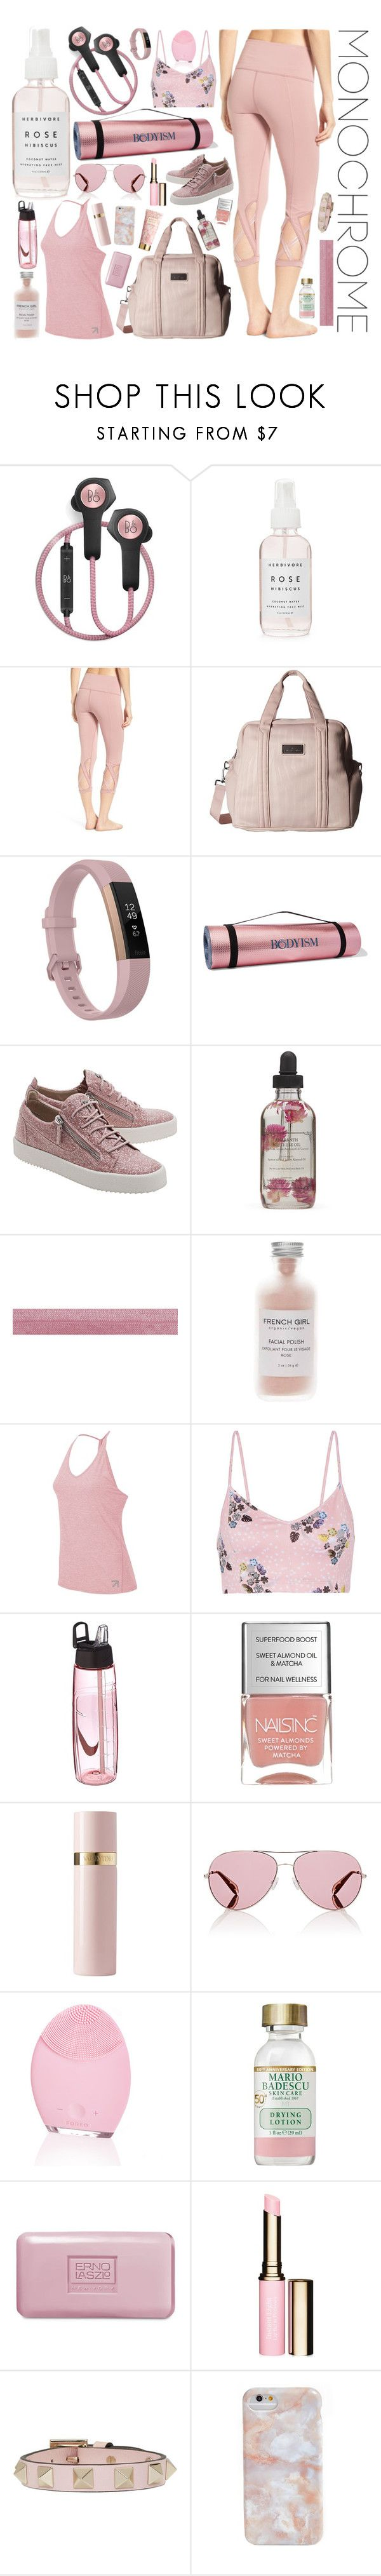 """""""Pose In Rose"""" by rachael-aislynn ❤ liked on Polyvore featuring B&O Play, Herbivore, Zella, adidas, Fitbit, Bodyism, Giuseppe Zanotti, French Girl, New Balance and Live the Process"""